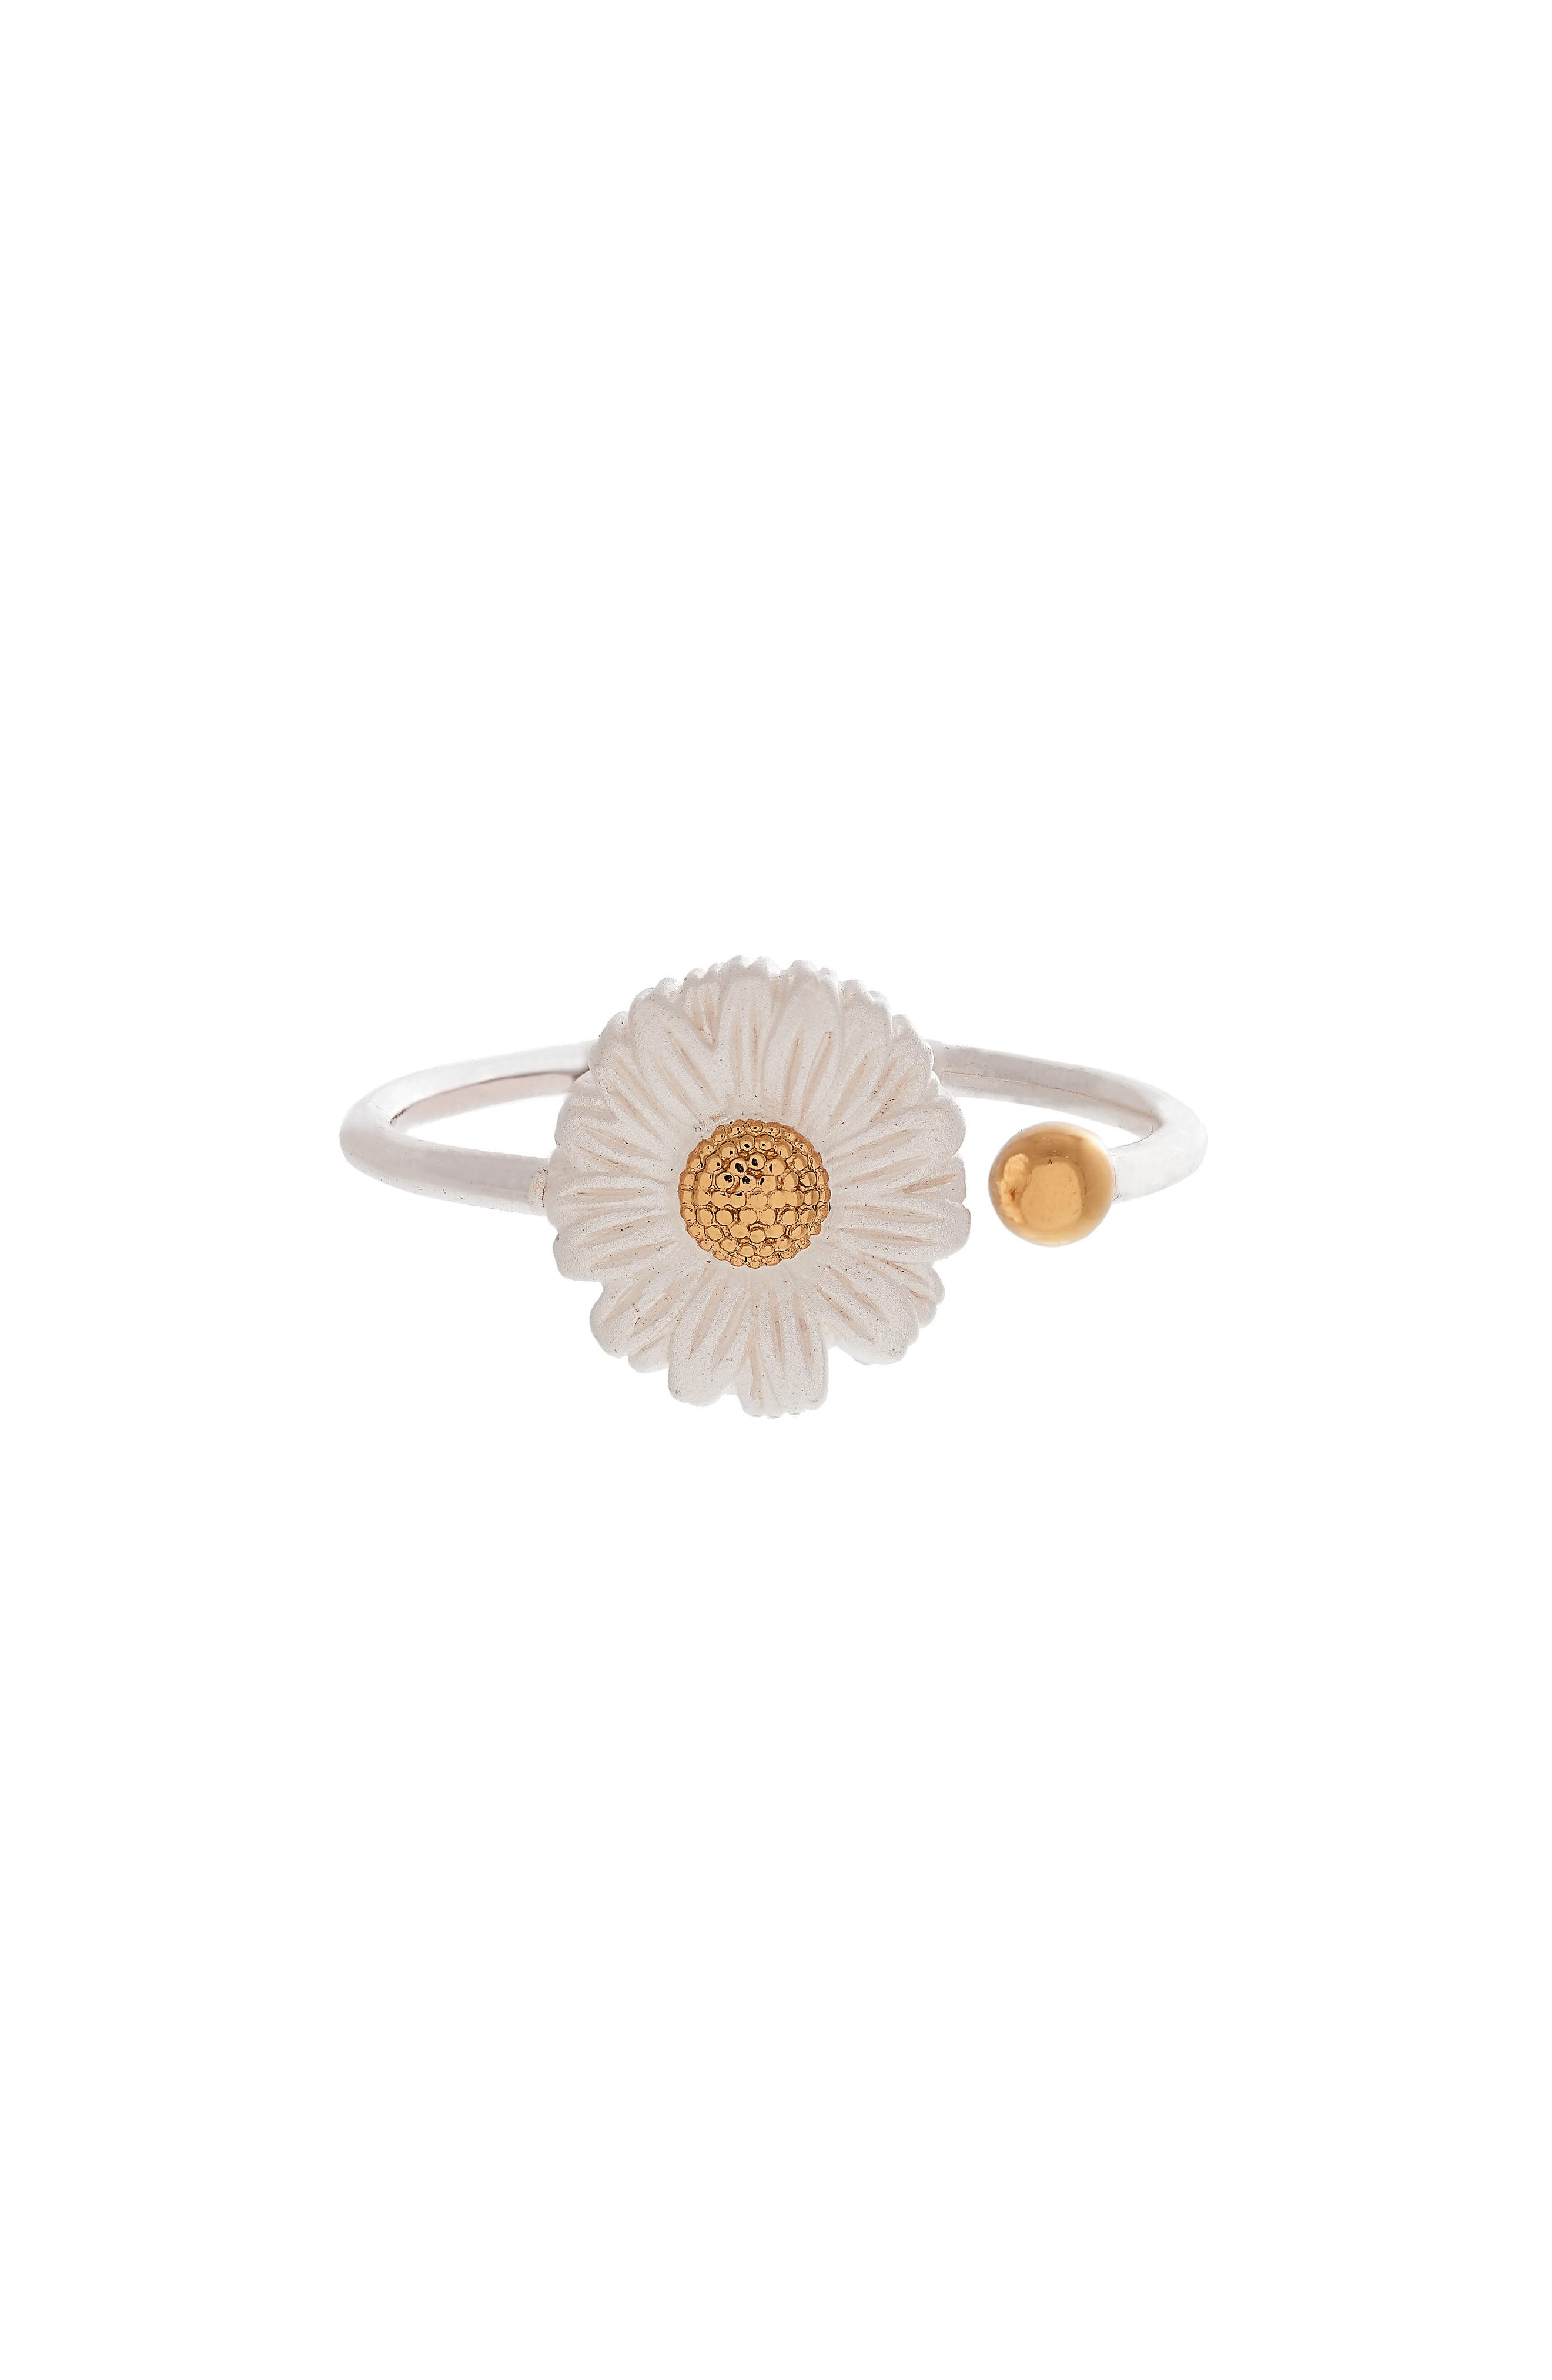 Daisy Ring,                             Main thumbnail 1, color,                             Silver/ Gold